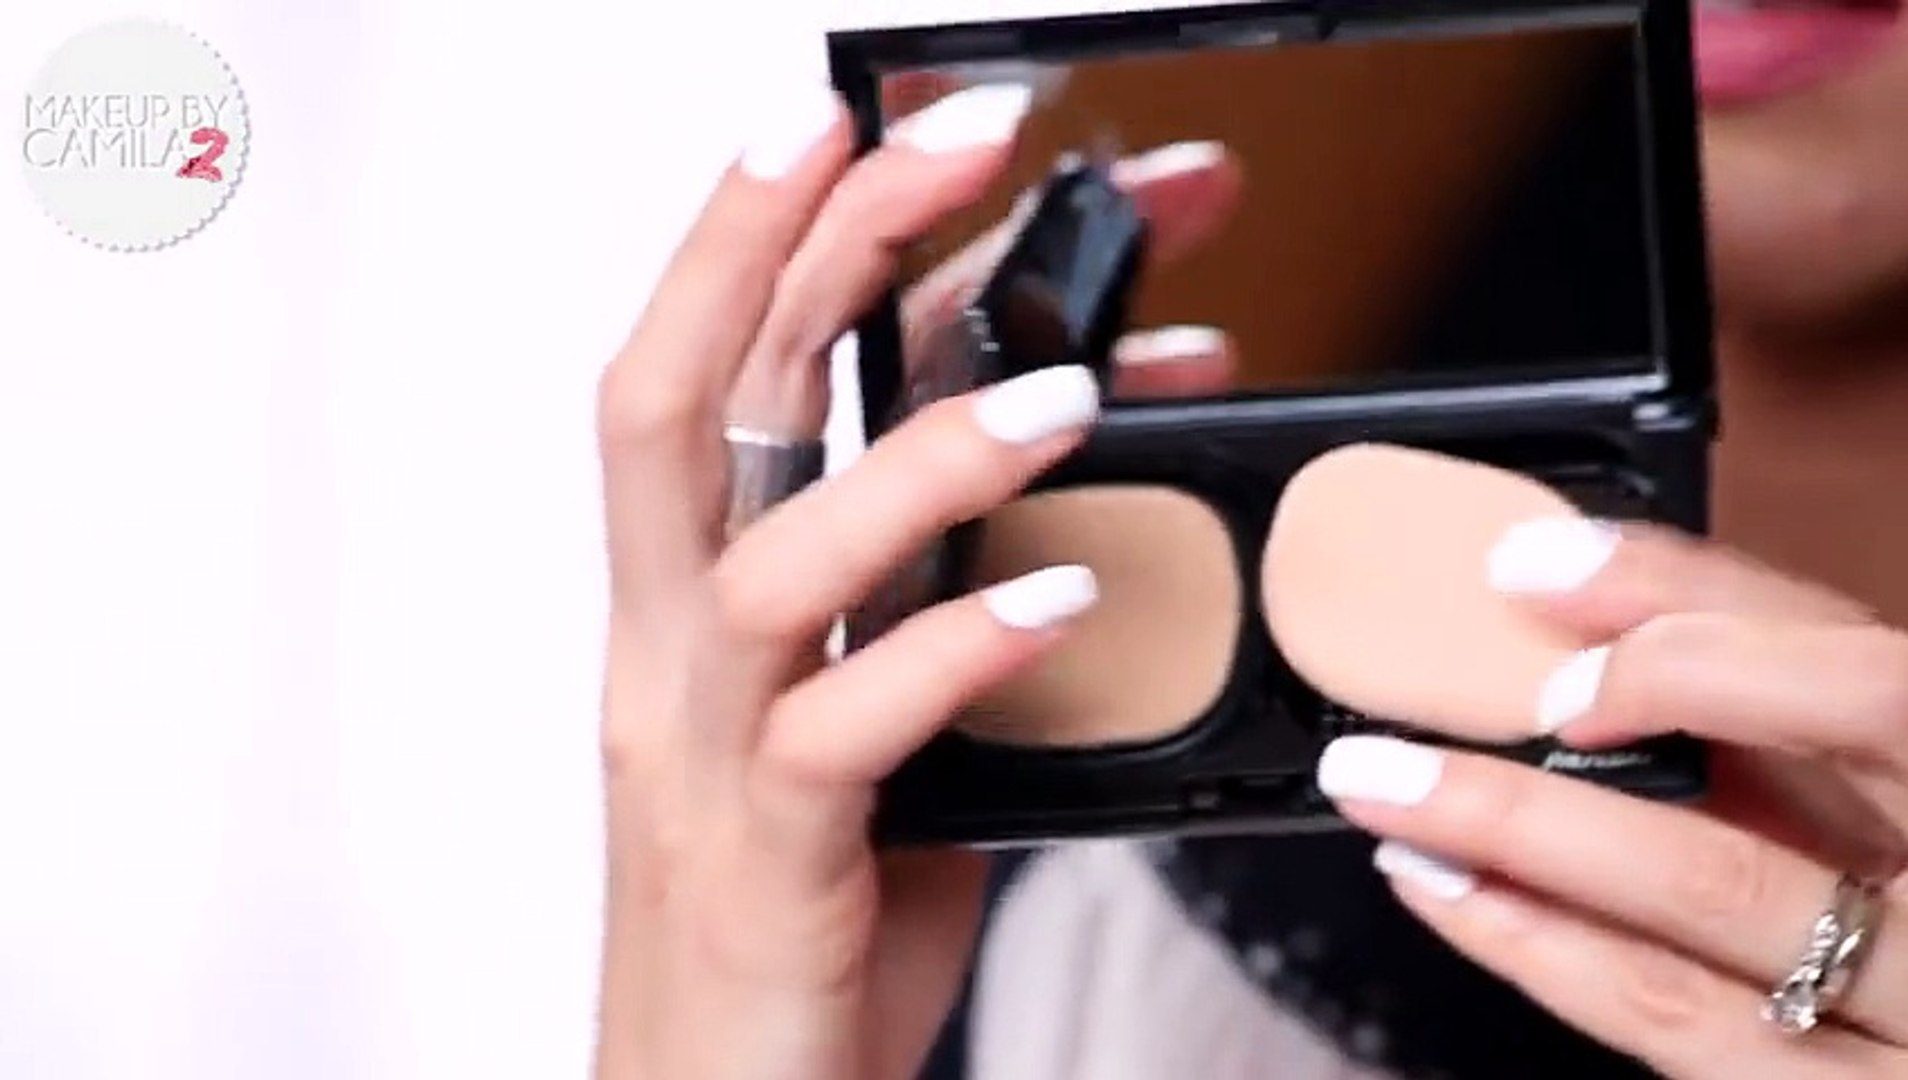 Sephora Makeup Haul and Favorite New Products  Makeup Tutorials and Beauty Reviews  Camila Coelho